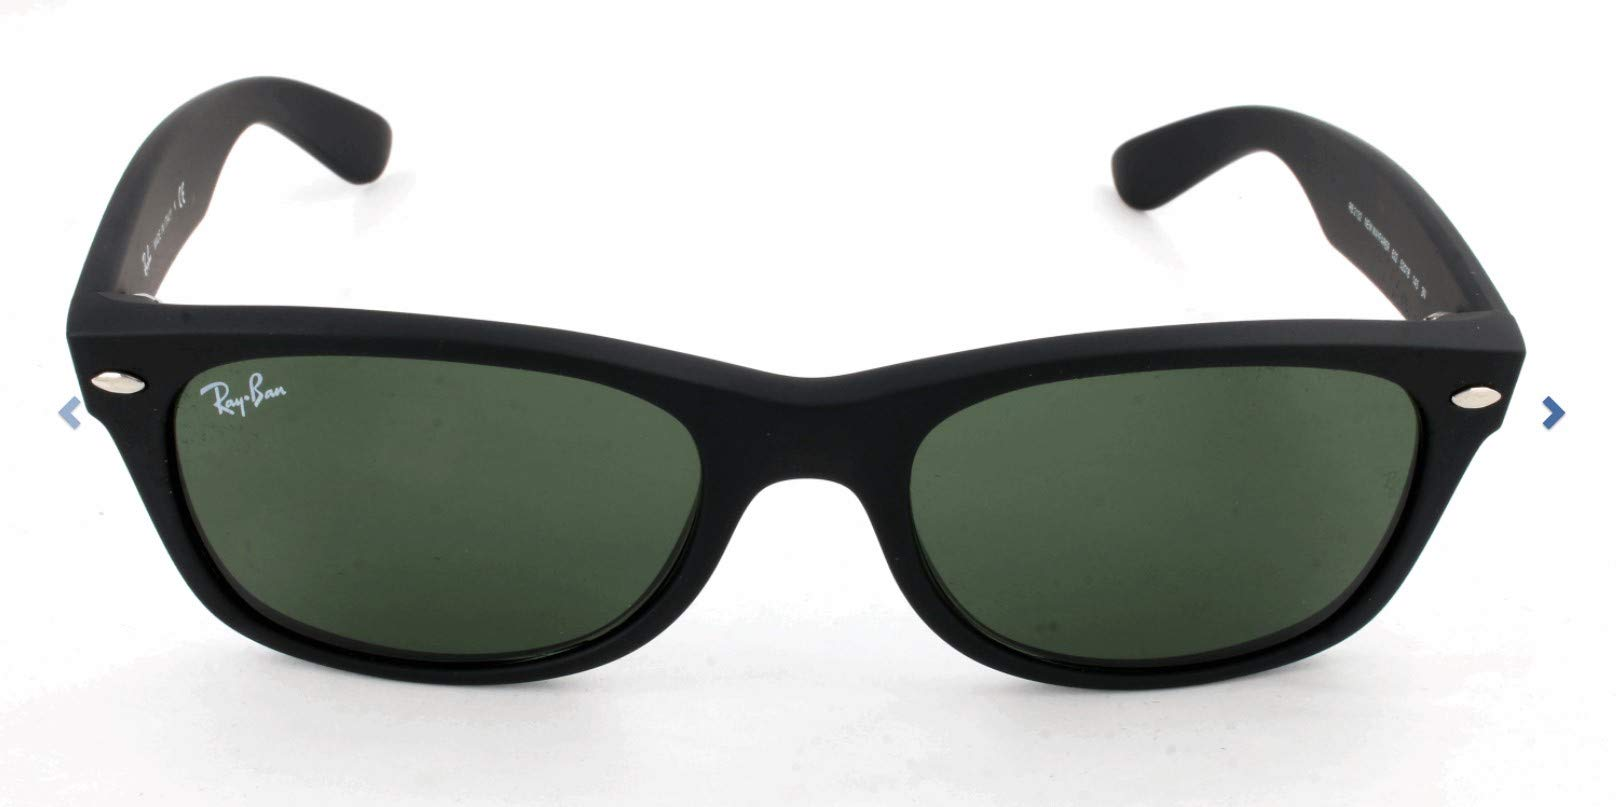 RAY-BAN RB2132 New Wayfarer Sunglasses, Black Rubber/Green, 58 mm by RAY-BAN